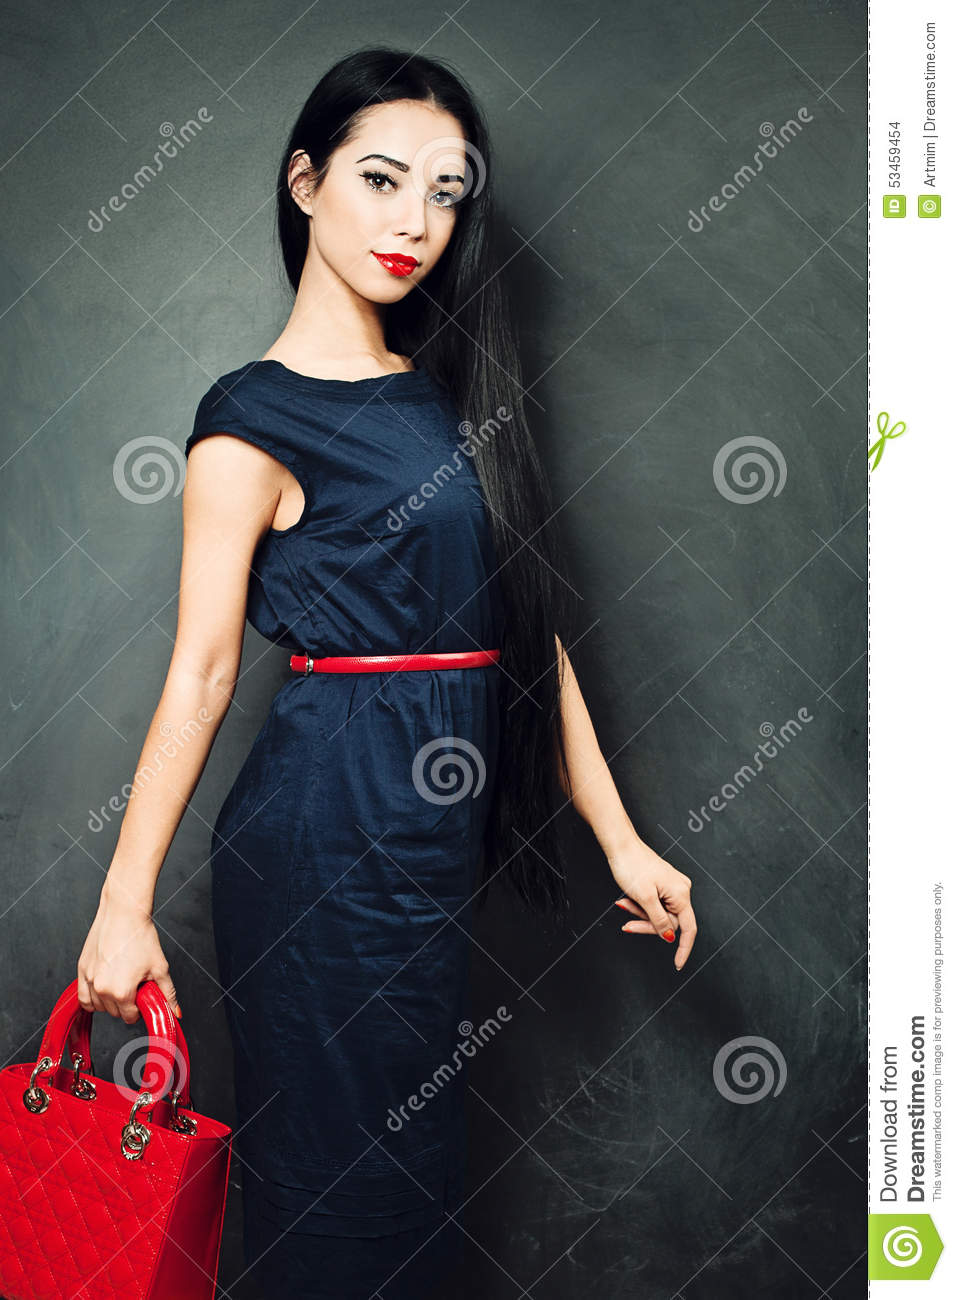 Black dress with red bag - Brunette Girl Wearing A Blue Dress And A Red Bag